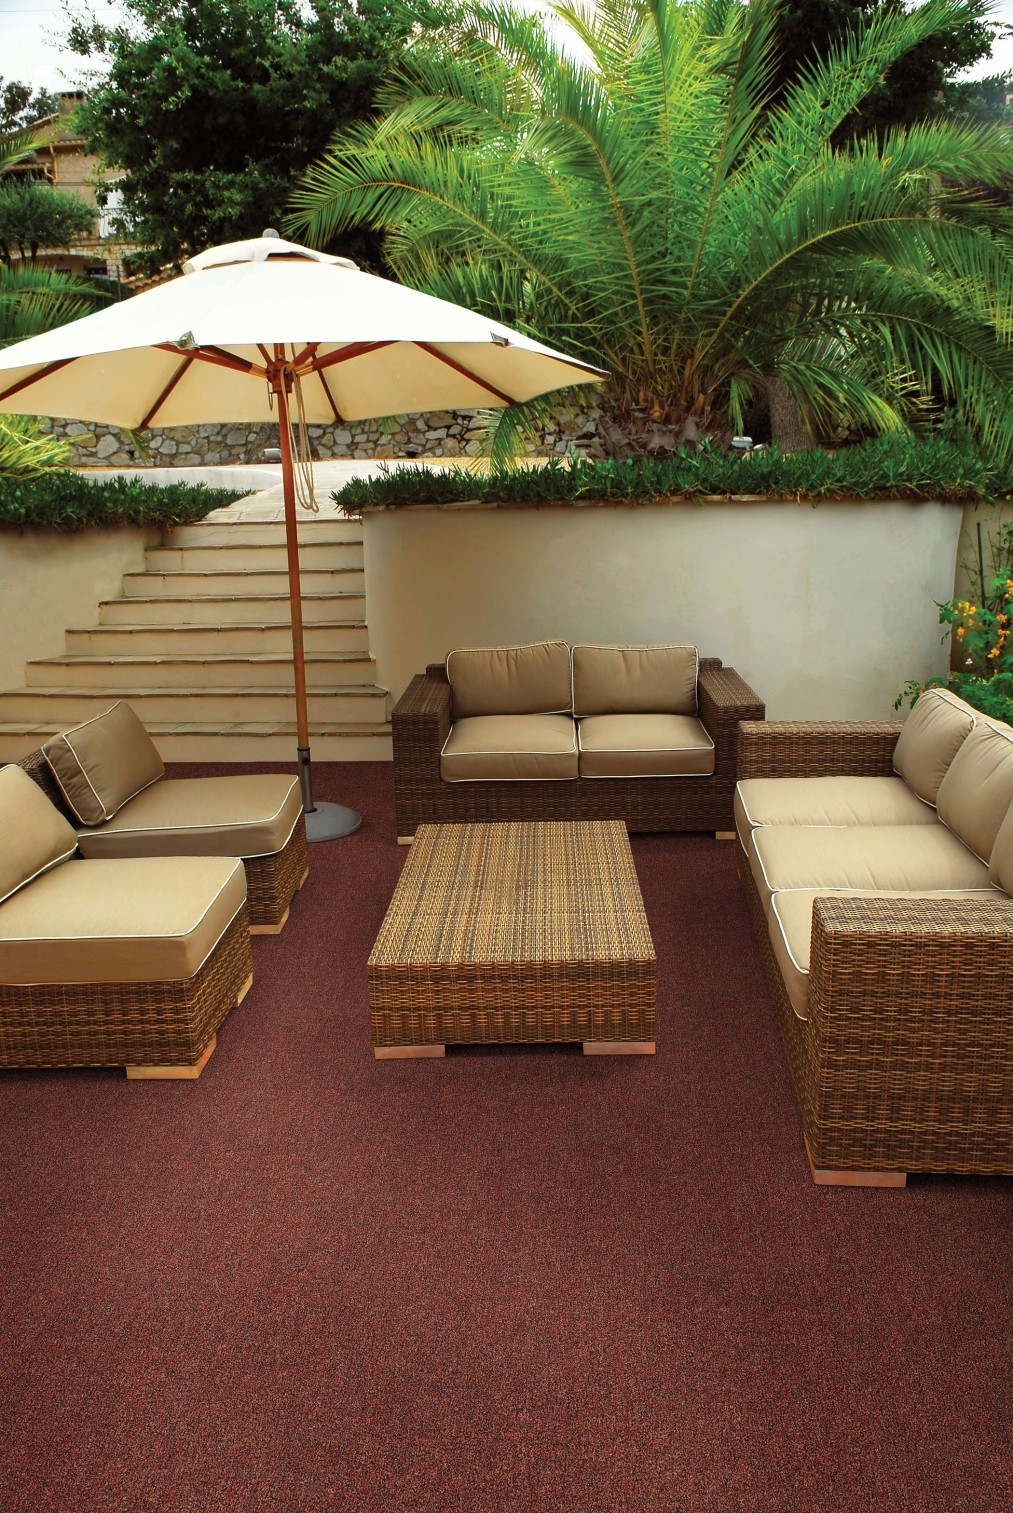 Simple Deck Patio Design With Maroon Color Outdoor Rugs And Regarding Outside Rugs For Decks (Image 13 of 15)